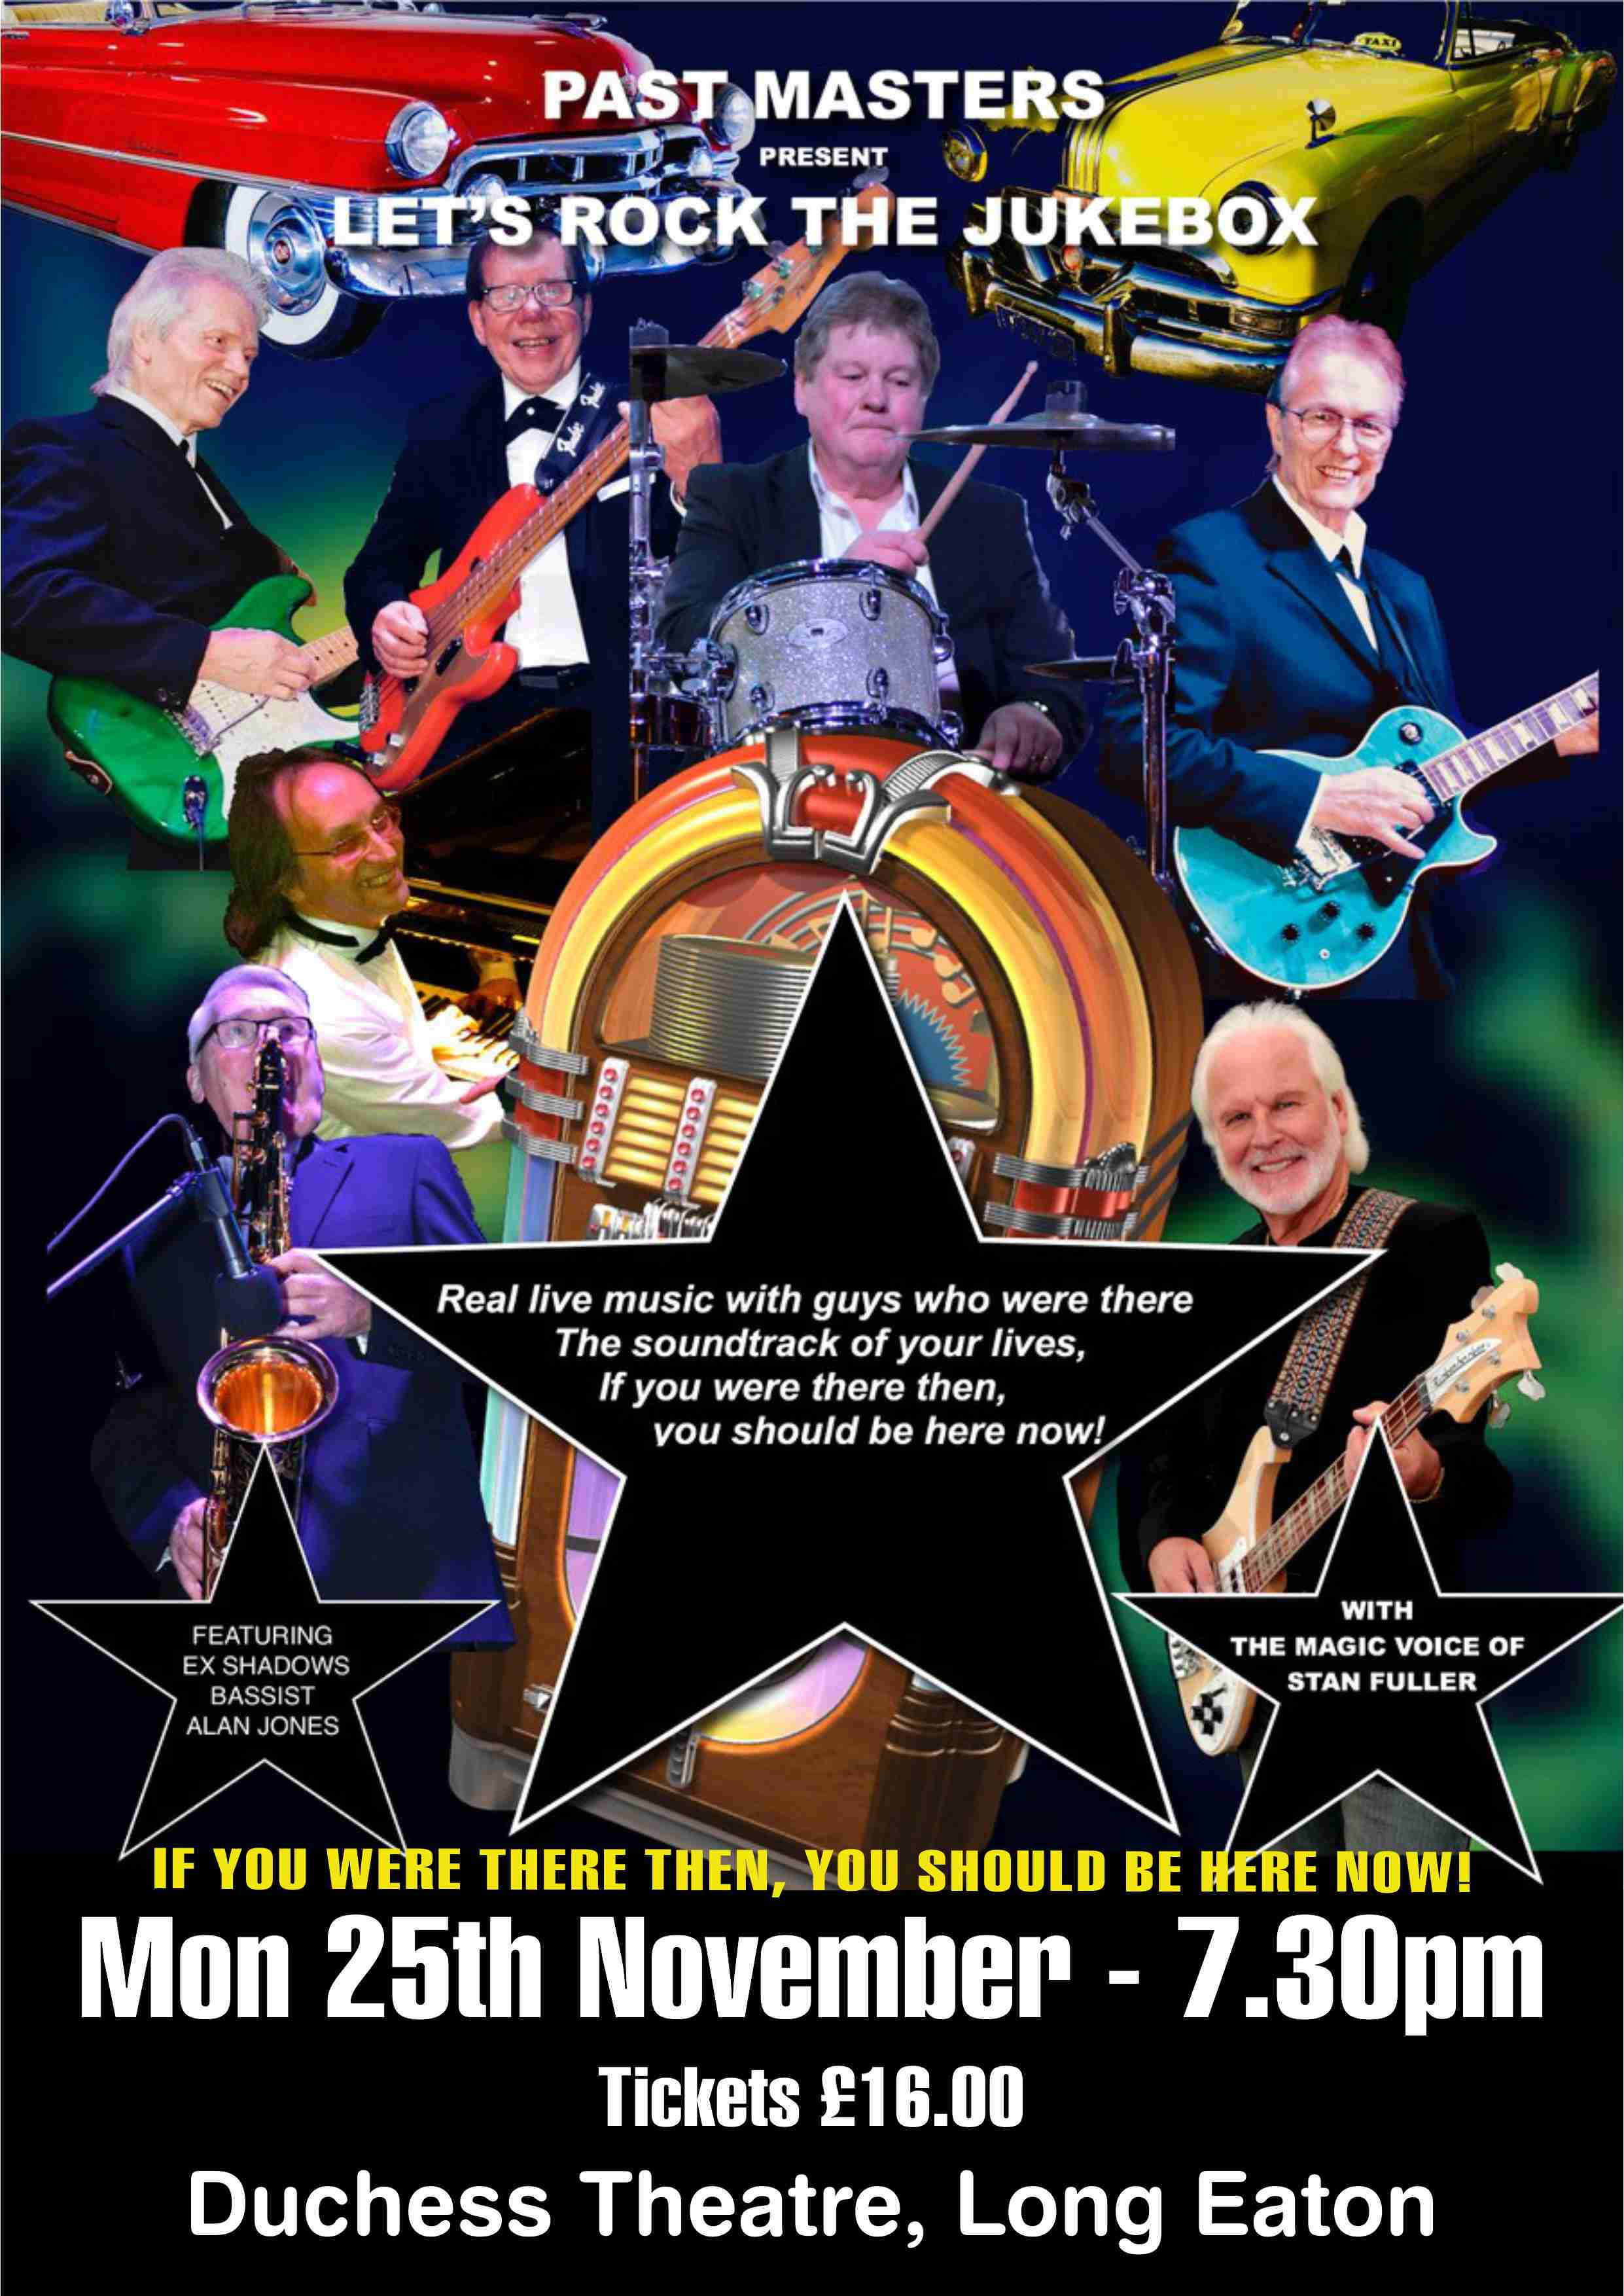 LET'S ROCK THE JUKEBOX - Past Masters banner image